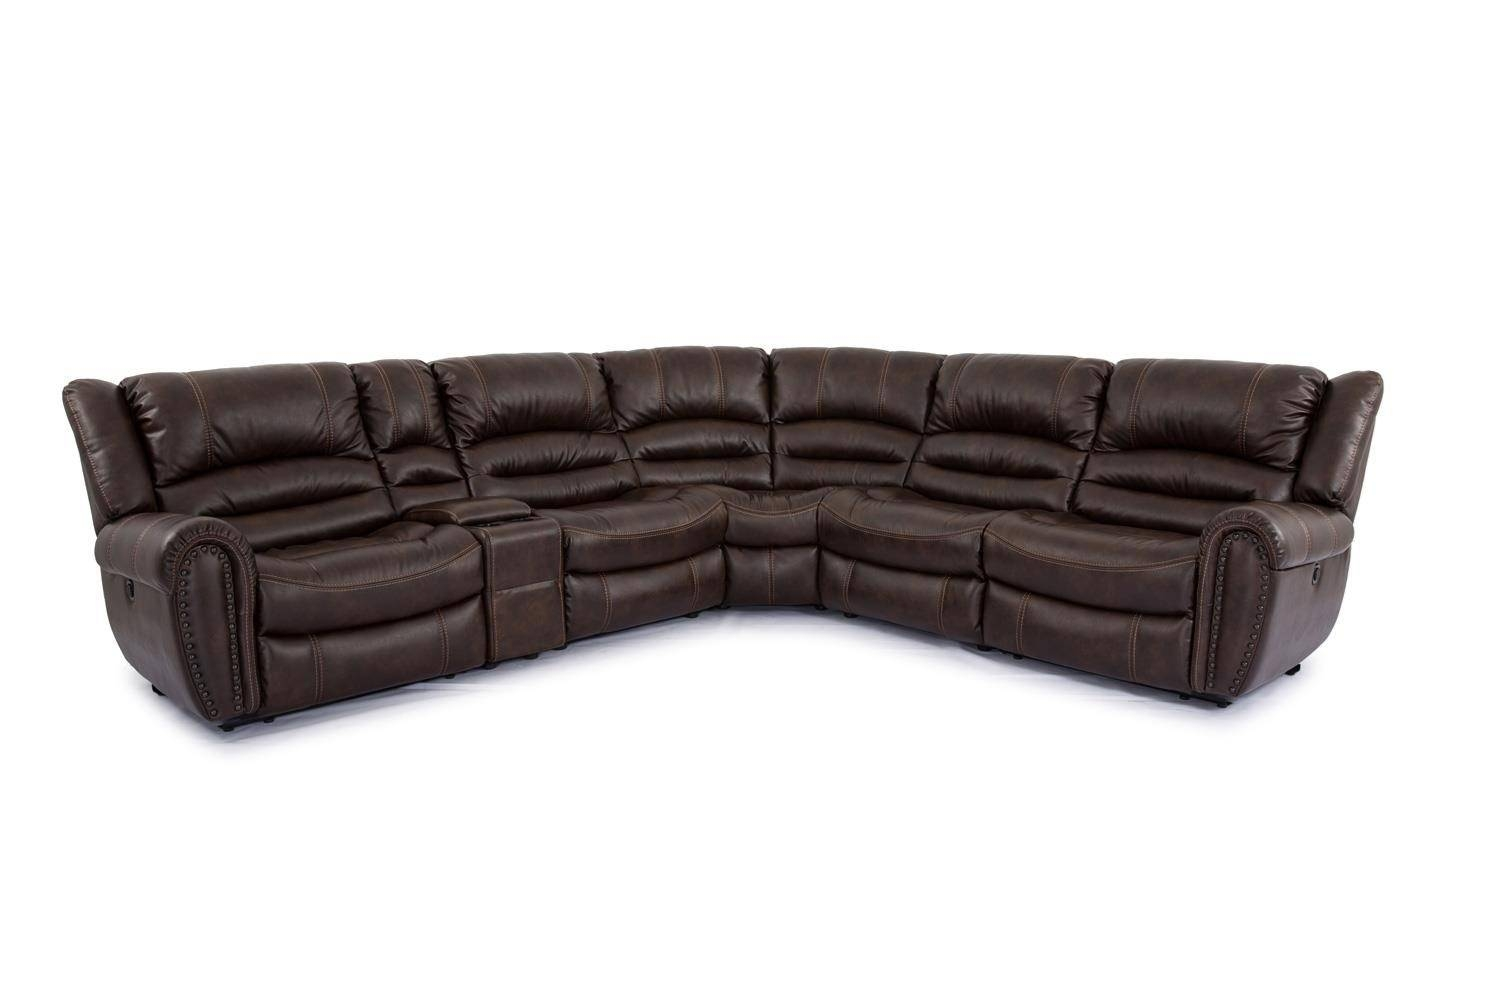 Cheers Sofa Cheers Sofa 6 Piece Sectional - Boulevard Home for Cheers Leather Sofas (Image 6 of 15)